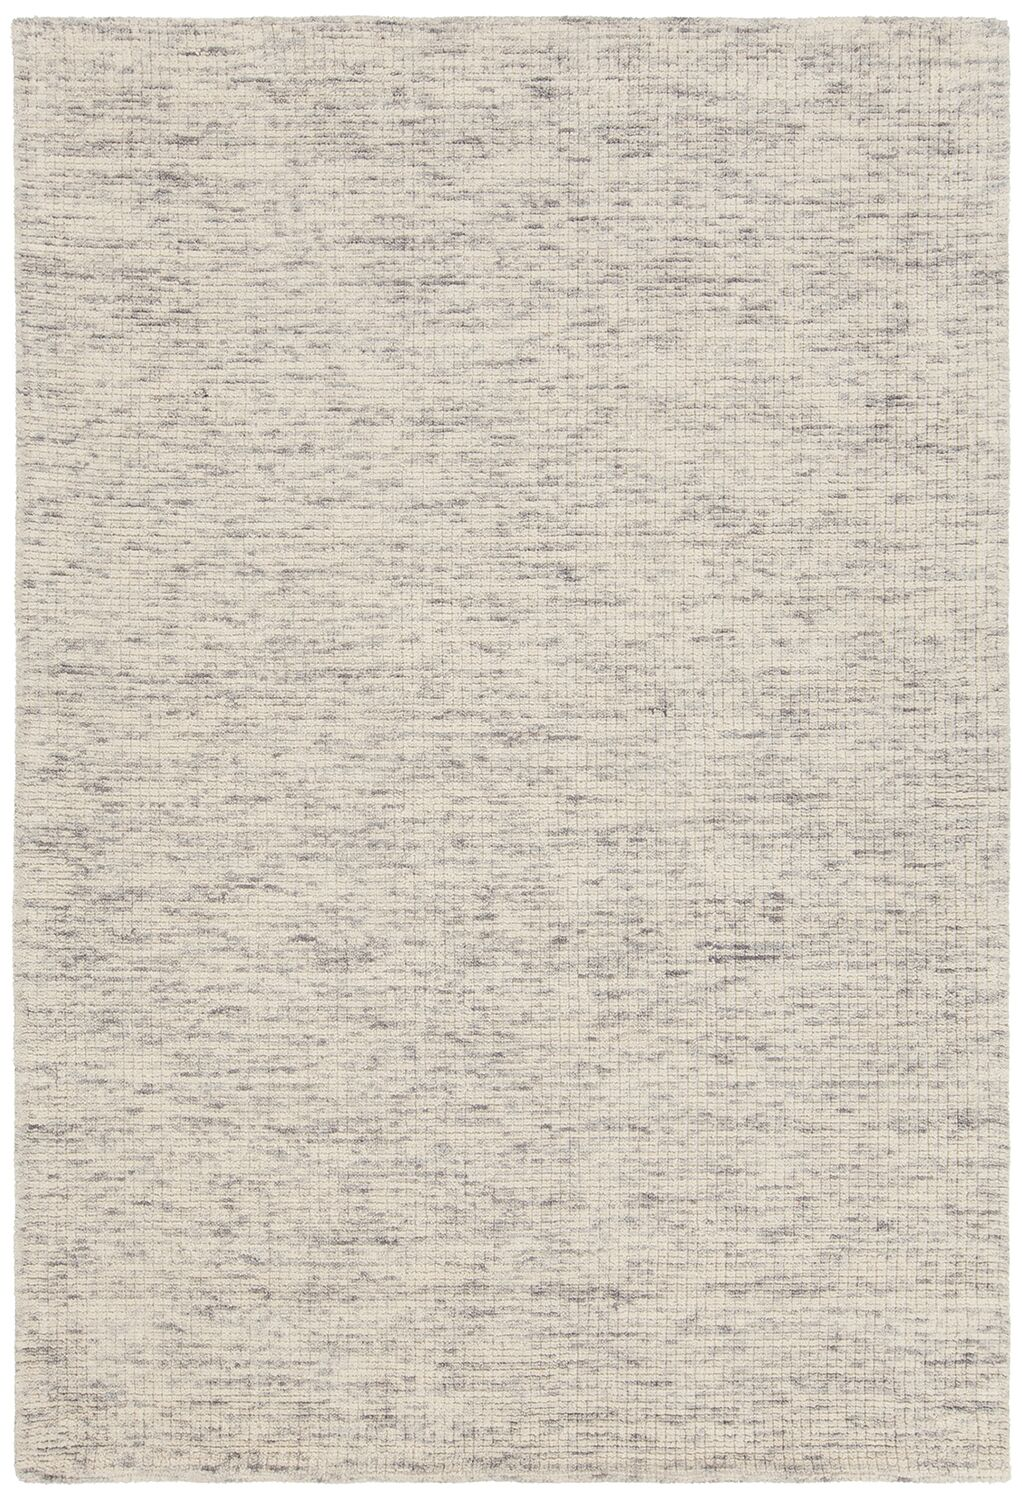 Cunningham Hand-Woven Ivory Area Rug Rug Size: 7'9